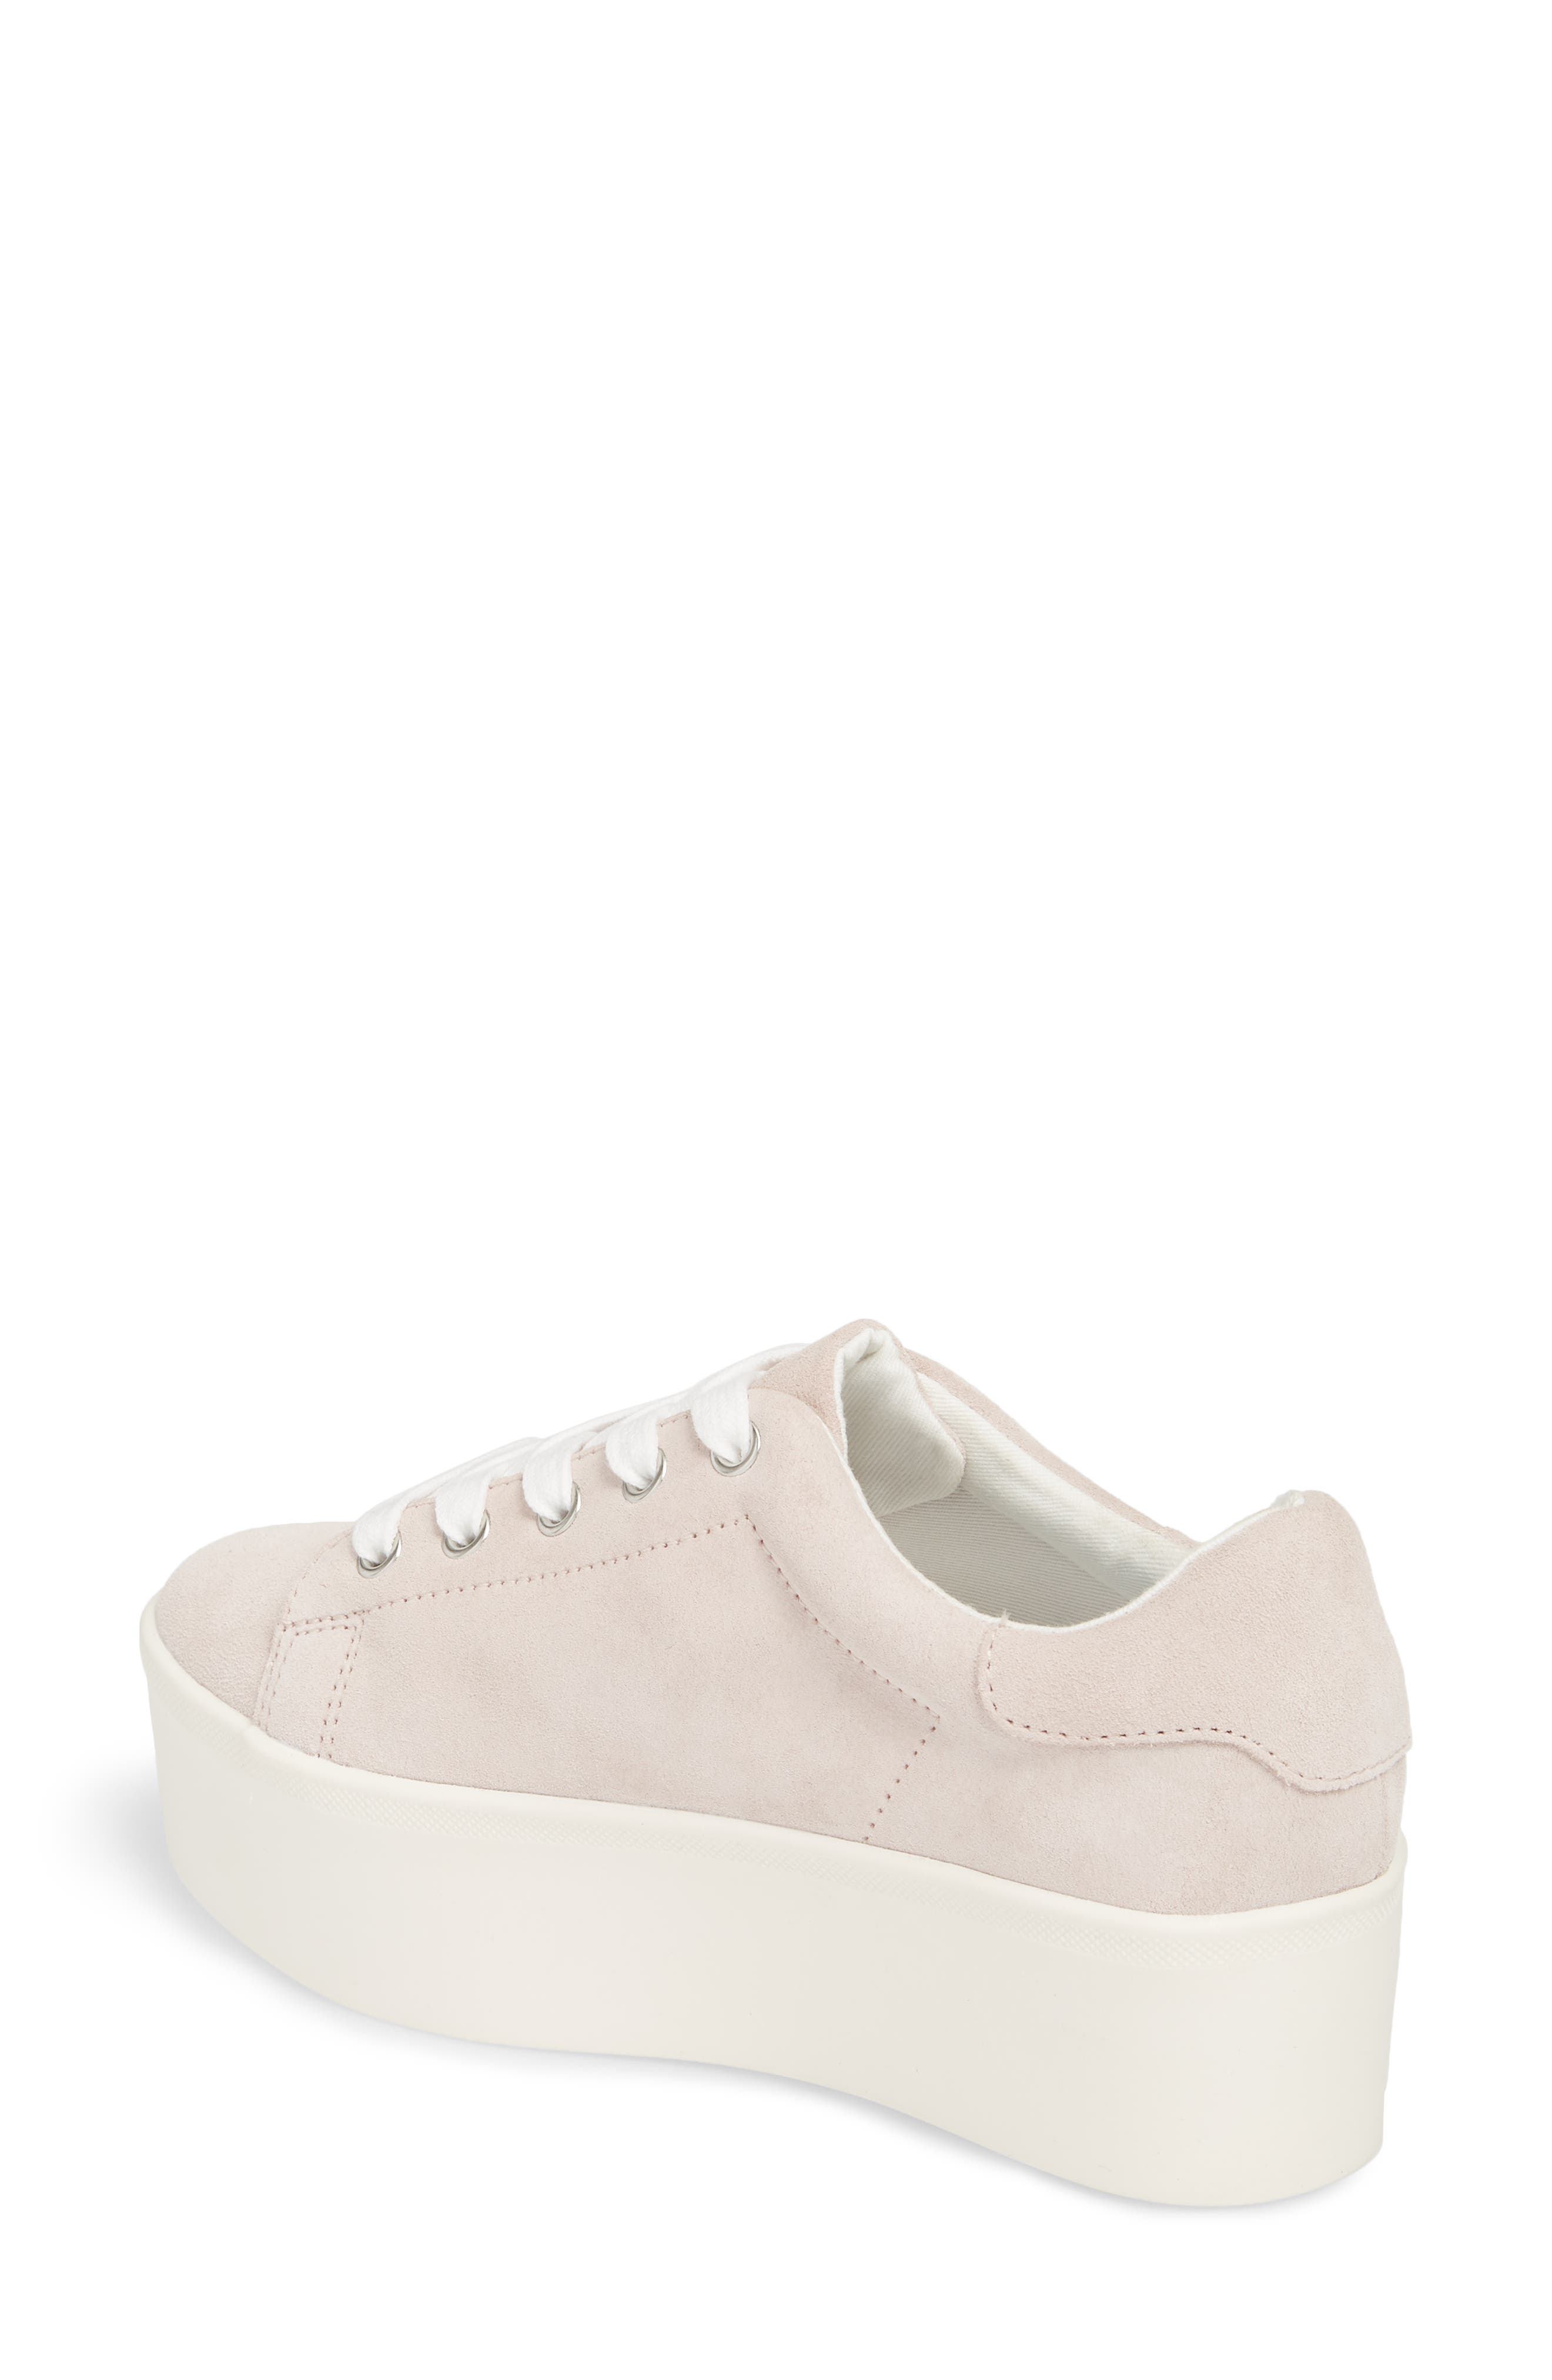 Palmer Sneaker,                             Alternate thumbnail 2, color,                             Pink Suede